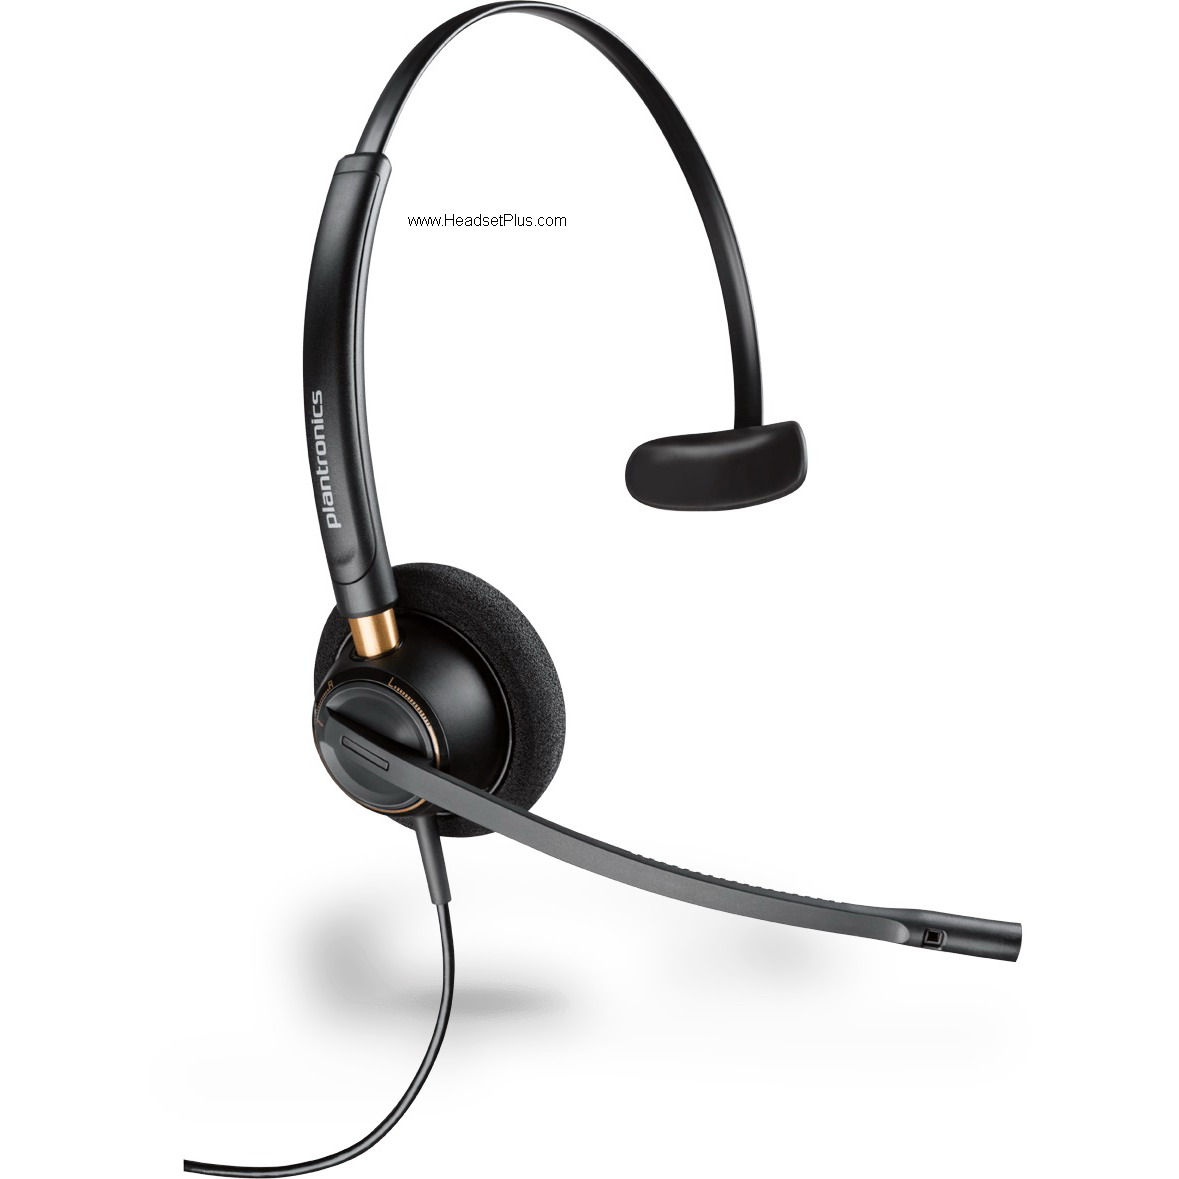 The Best Headsets for Landline Telephones, Tests 2019 and